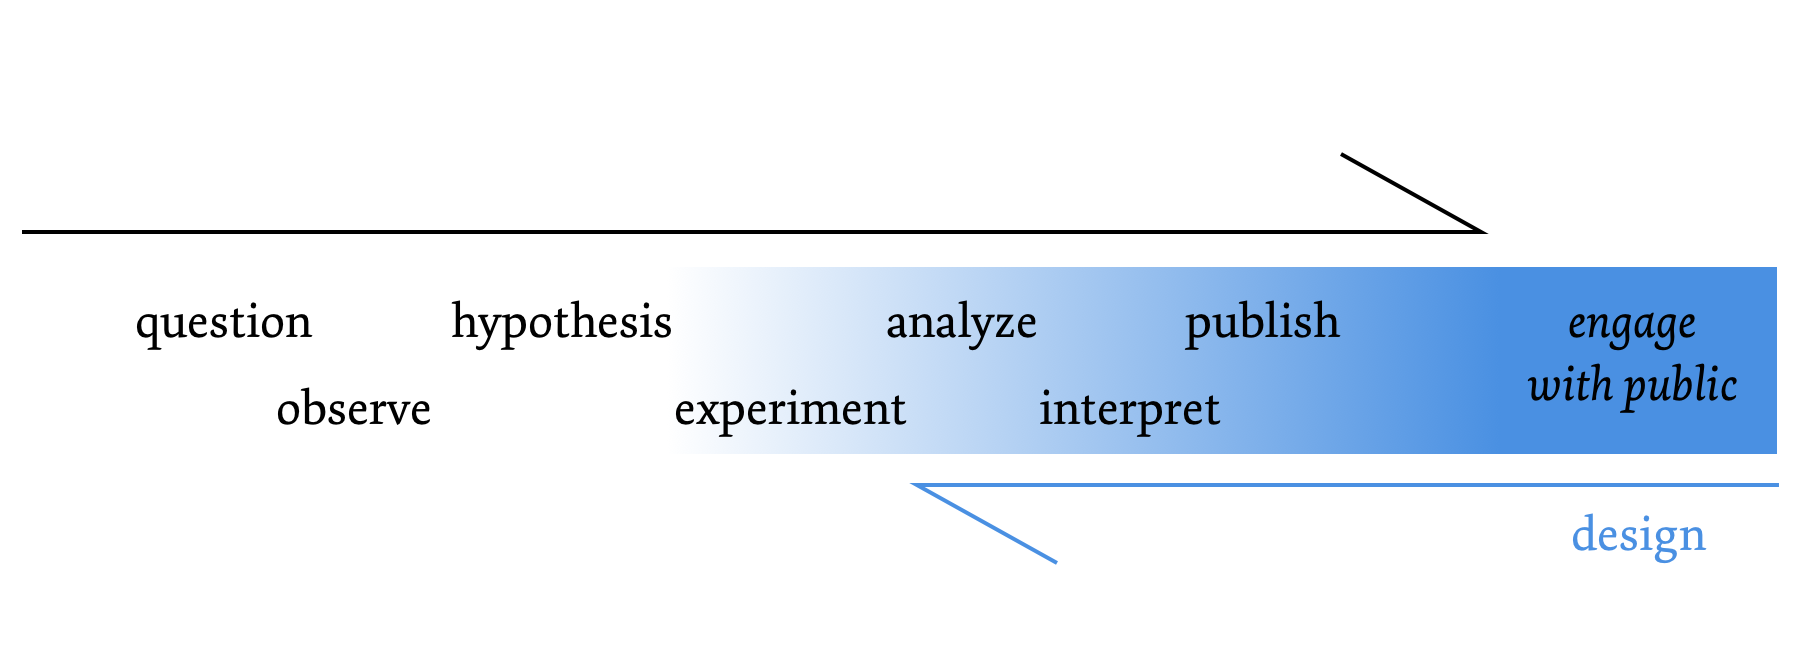 A simple model of the the scientific method with possible applications for design.